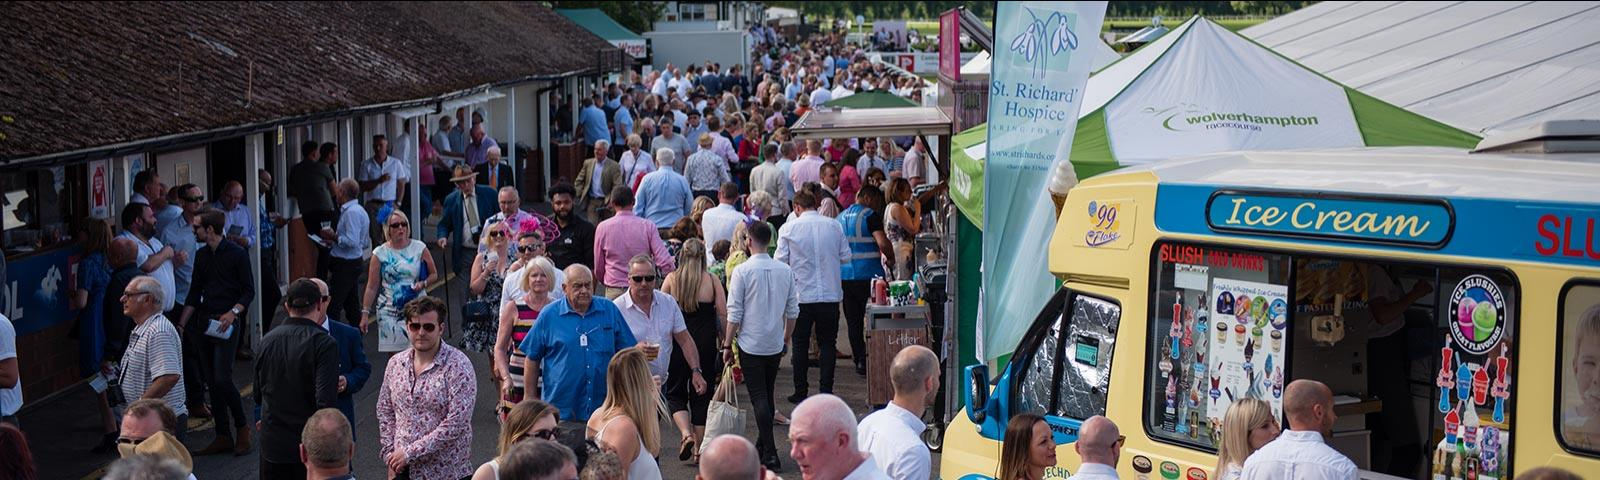 Crowds walking around Worcester Racecourse during an event.